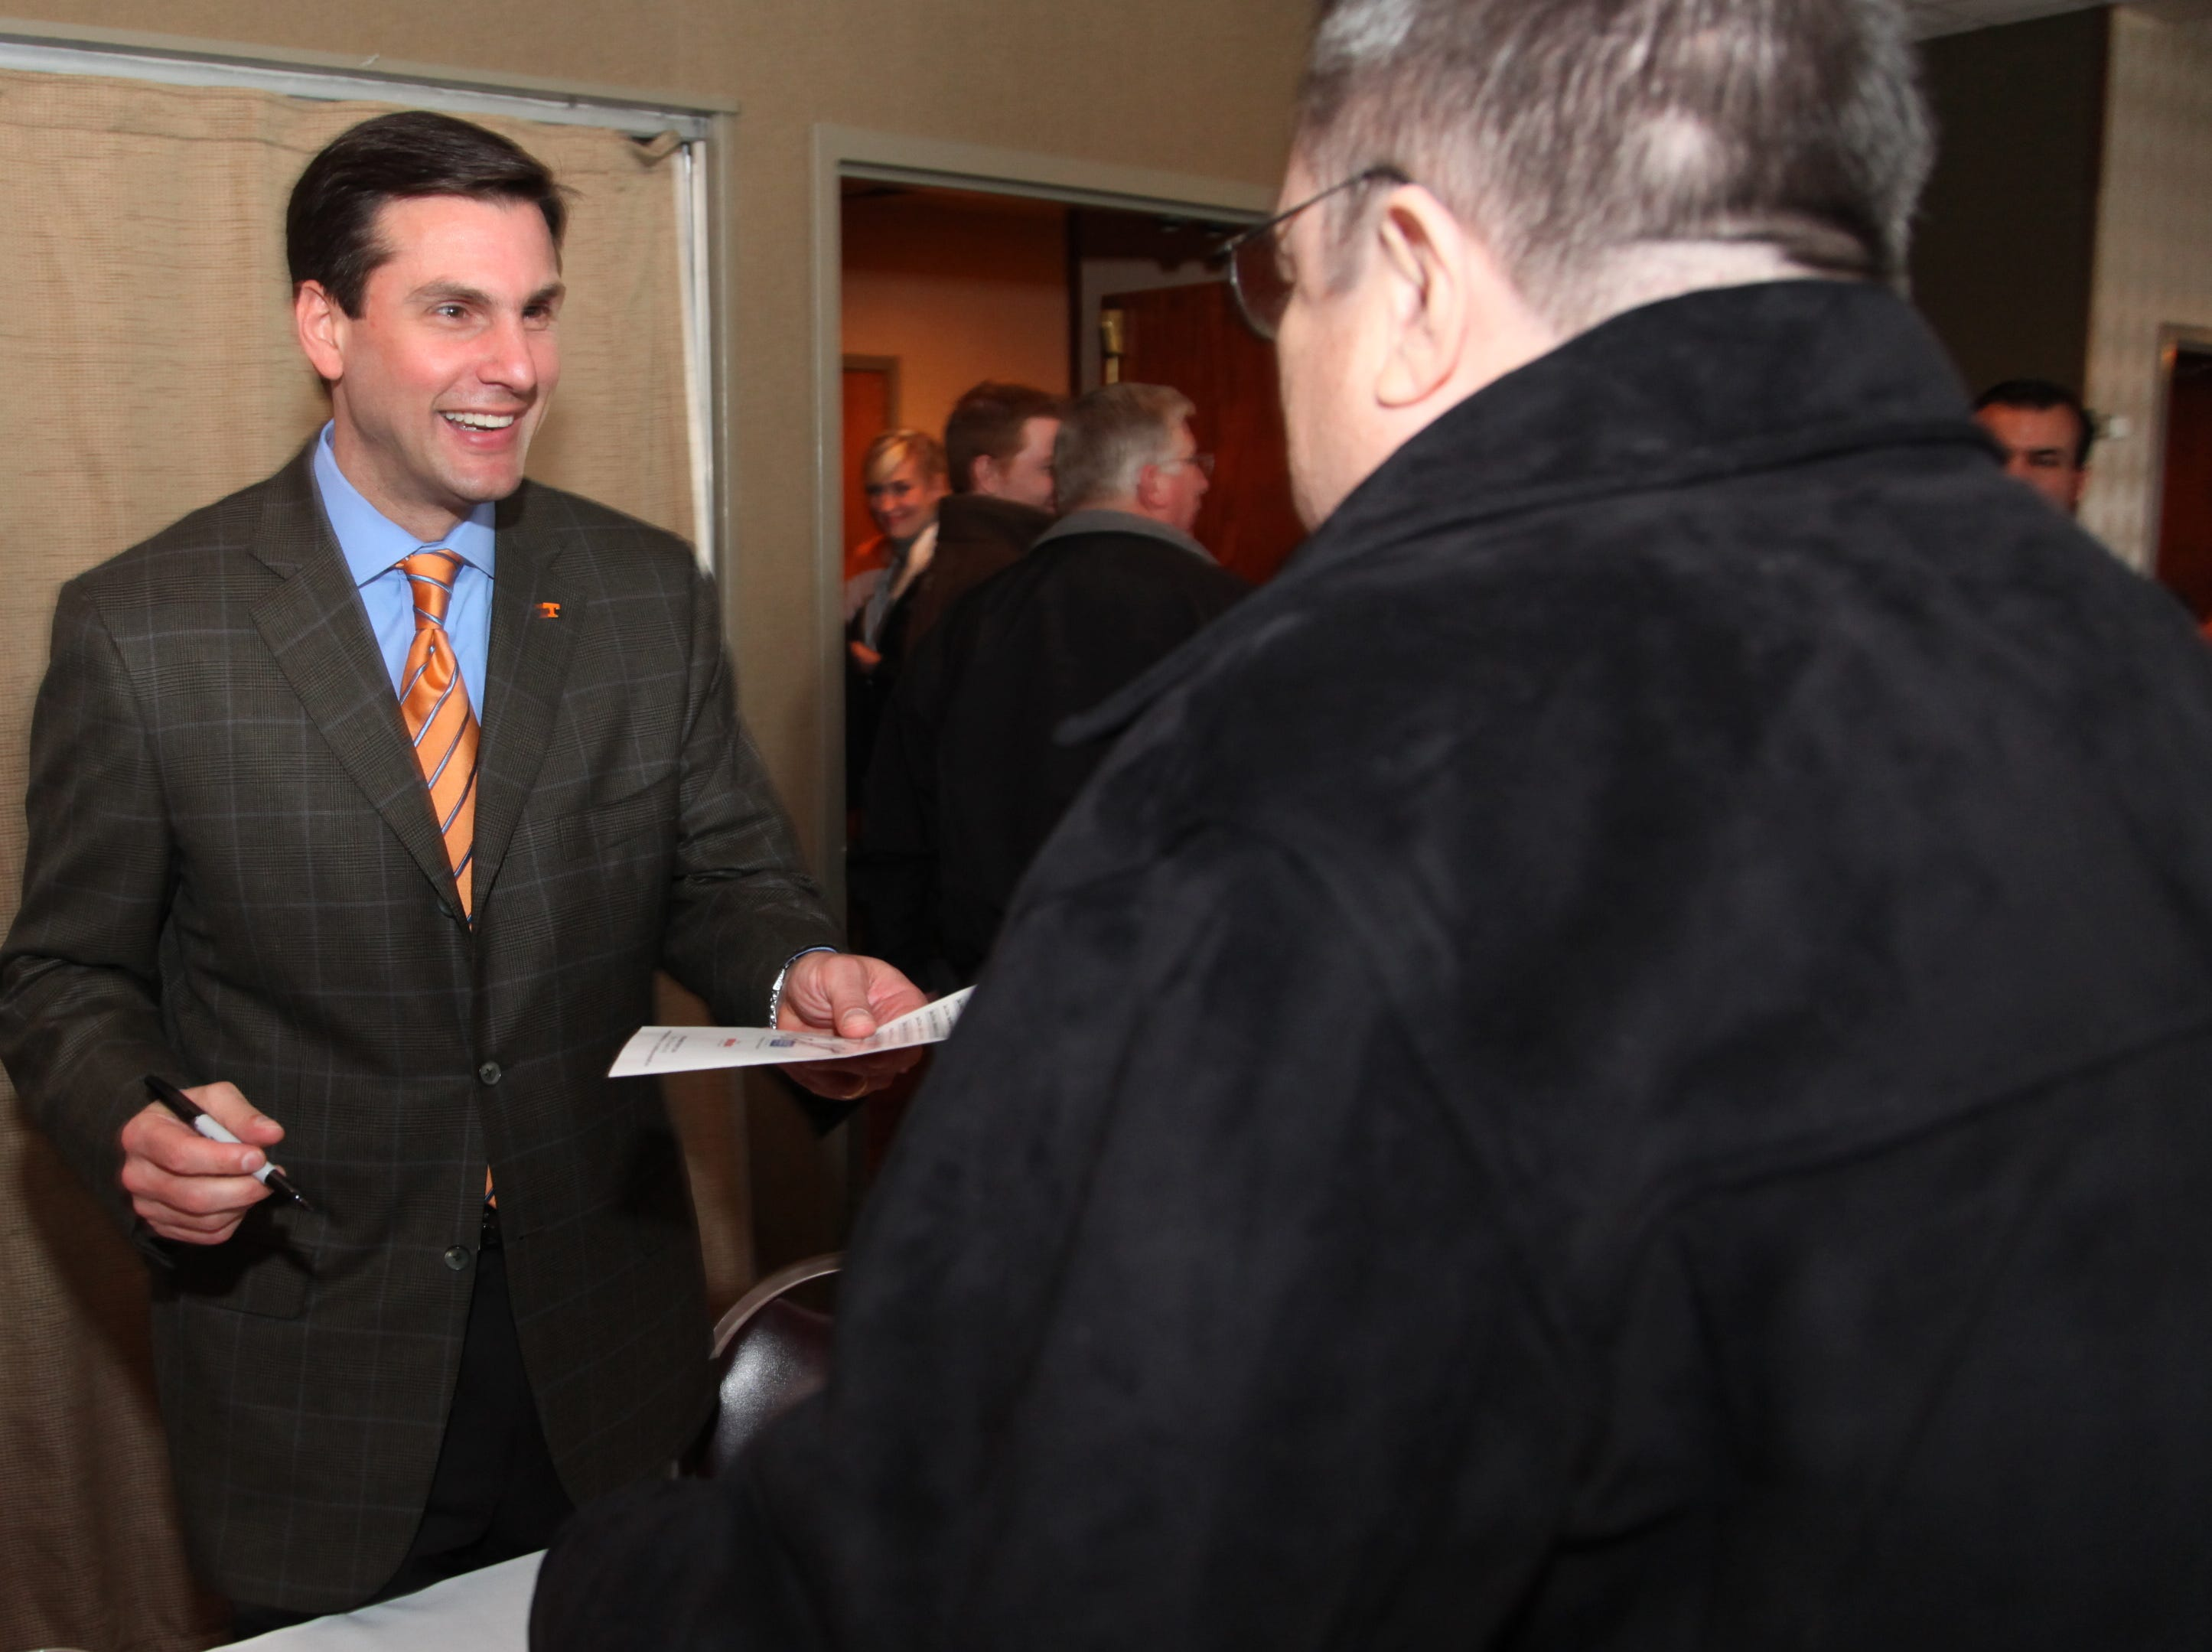 Tennessee football coach Derek Dooley, left, signs an autograph for Jerry Campbell following the Big Orange Tip-off Club meeting at Calhoun's restaurant Wednesday, Feb. 24, 2010.